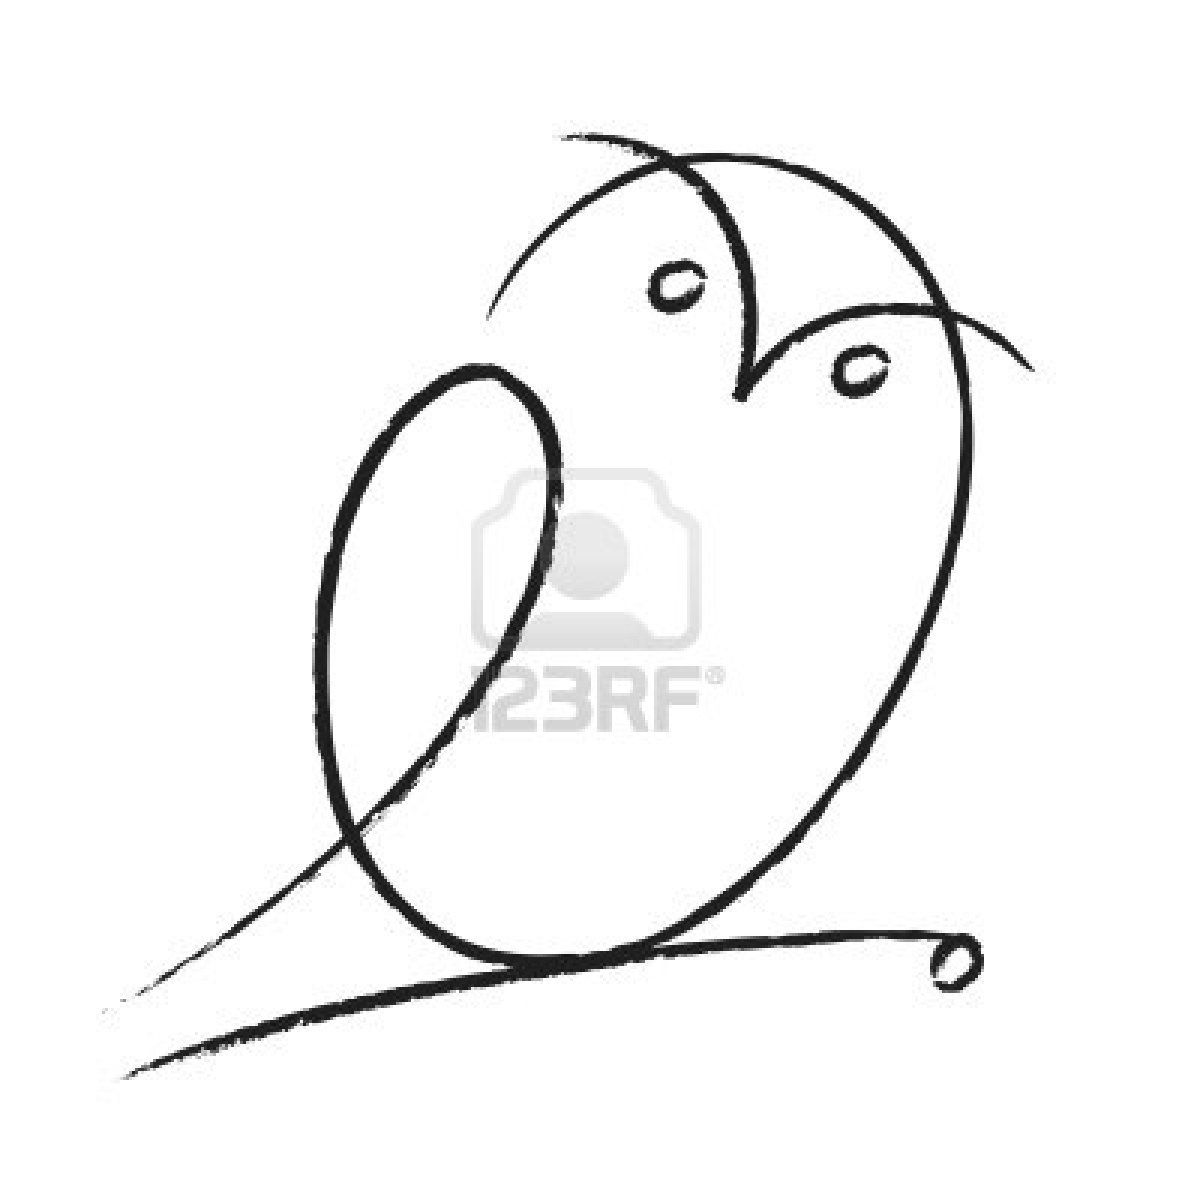 Owl tattoo idea my favorite animal for Easy detailed drawings